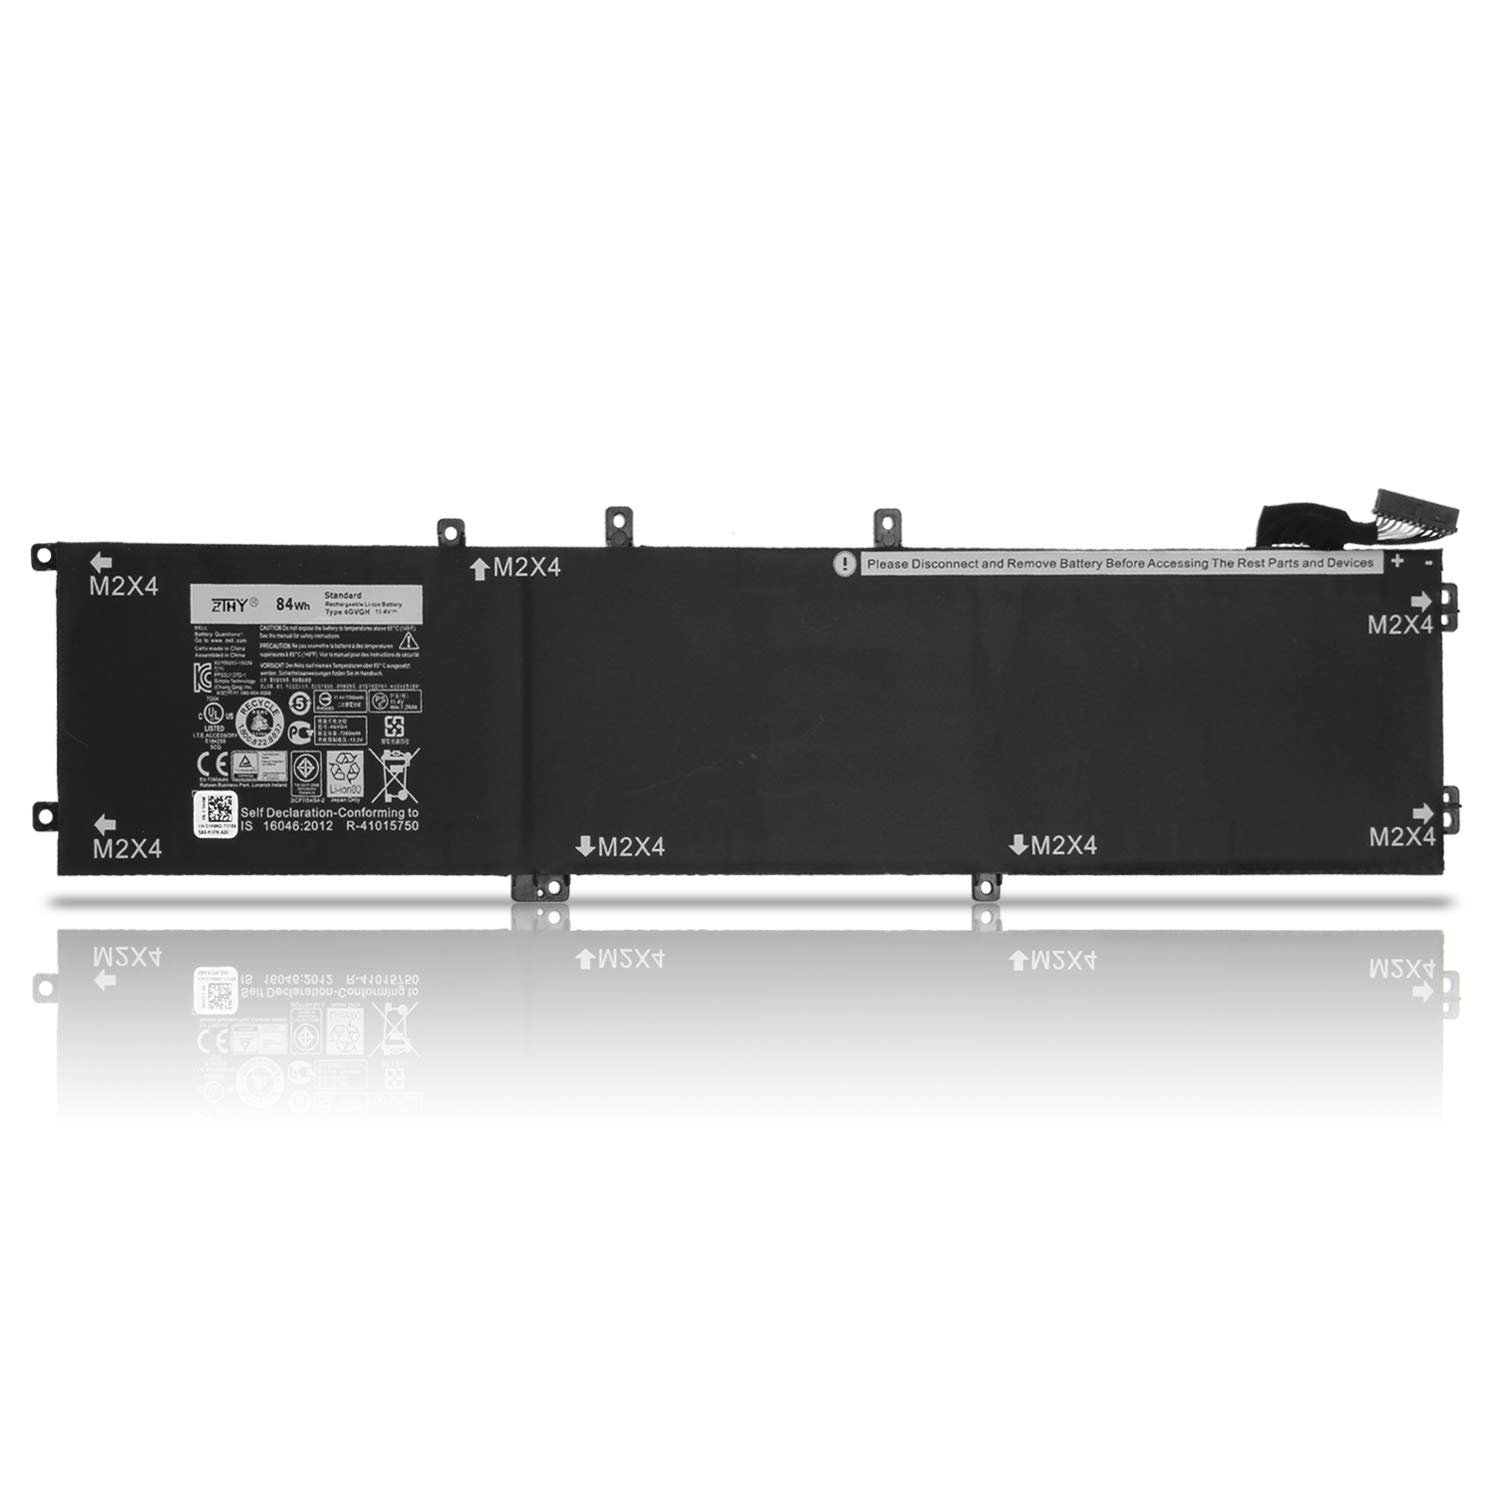 Bateria 4gvgh Para Dell Xps 15 9550 Precision 5510 Mobile Workstation Series P56f 1p6kd T453x 0t453 062mjv M7r96 84wh 6